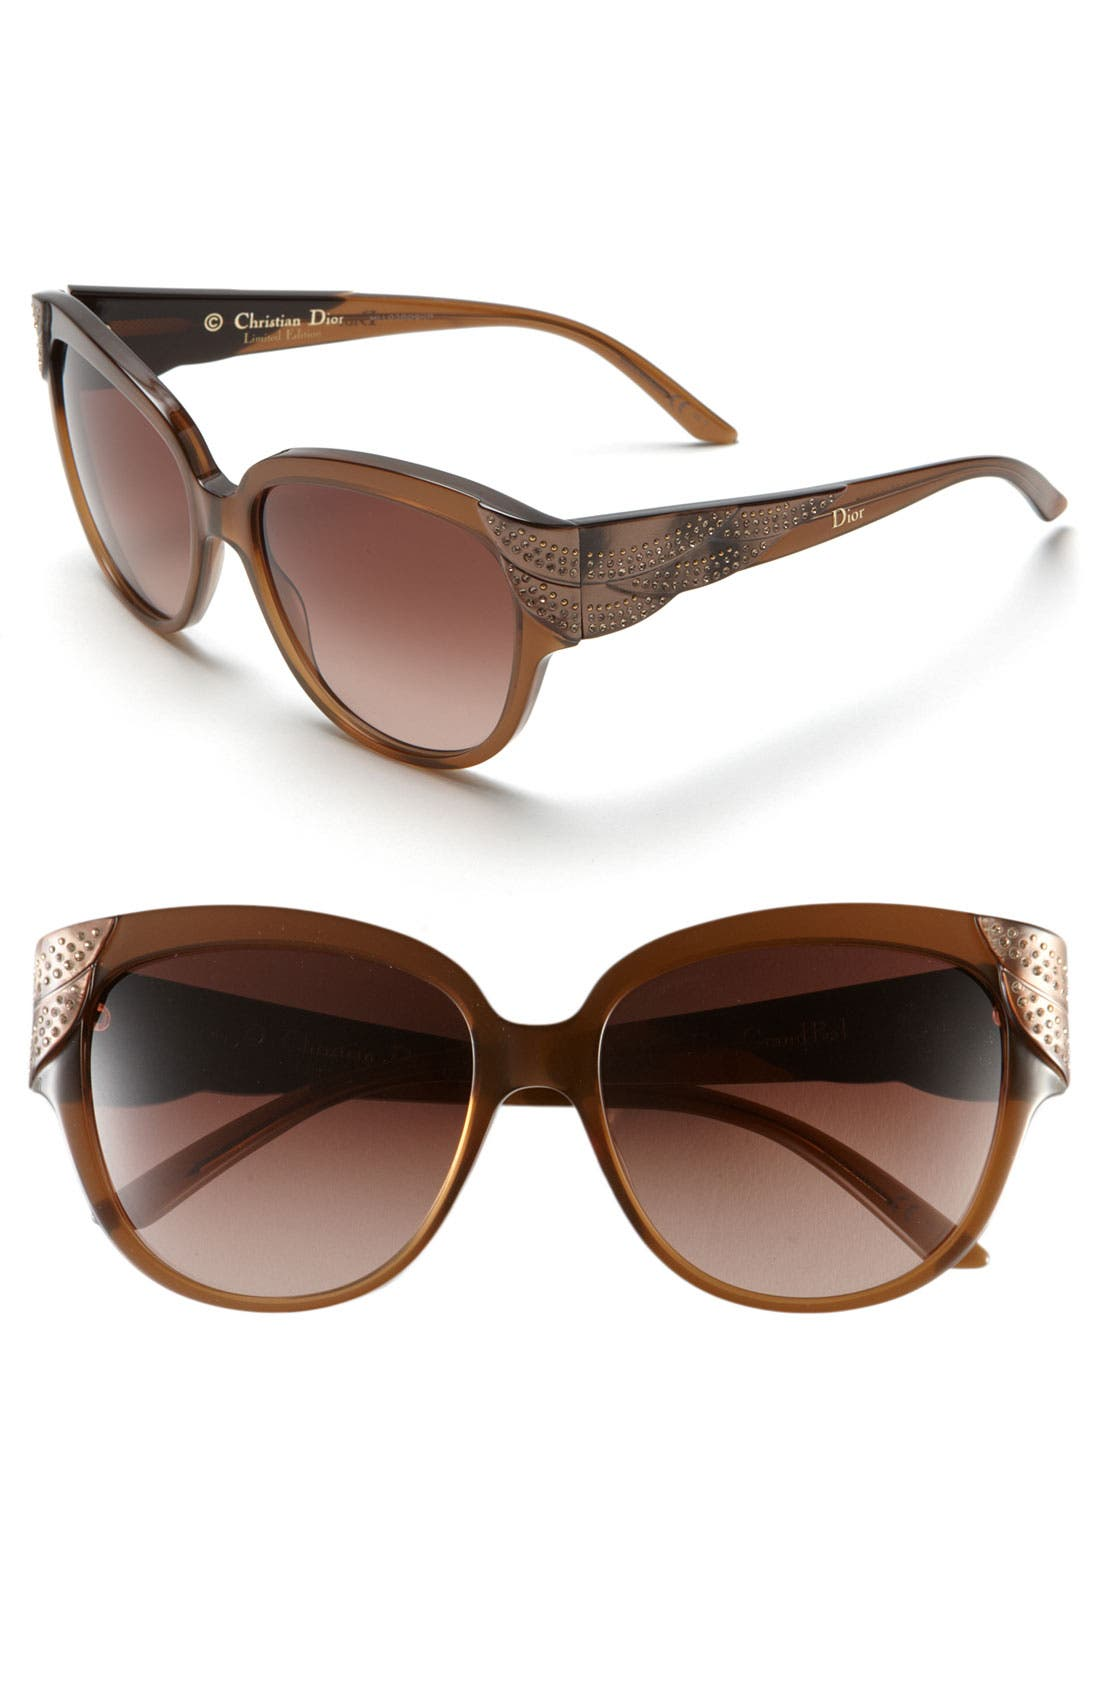 Alternate Image 1 Selected - Dior 56mm Retro Sunglasses (Limited Edition)